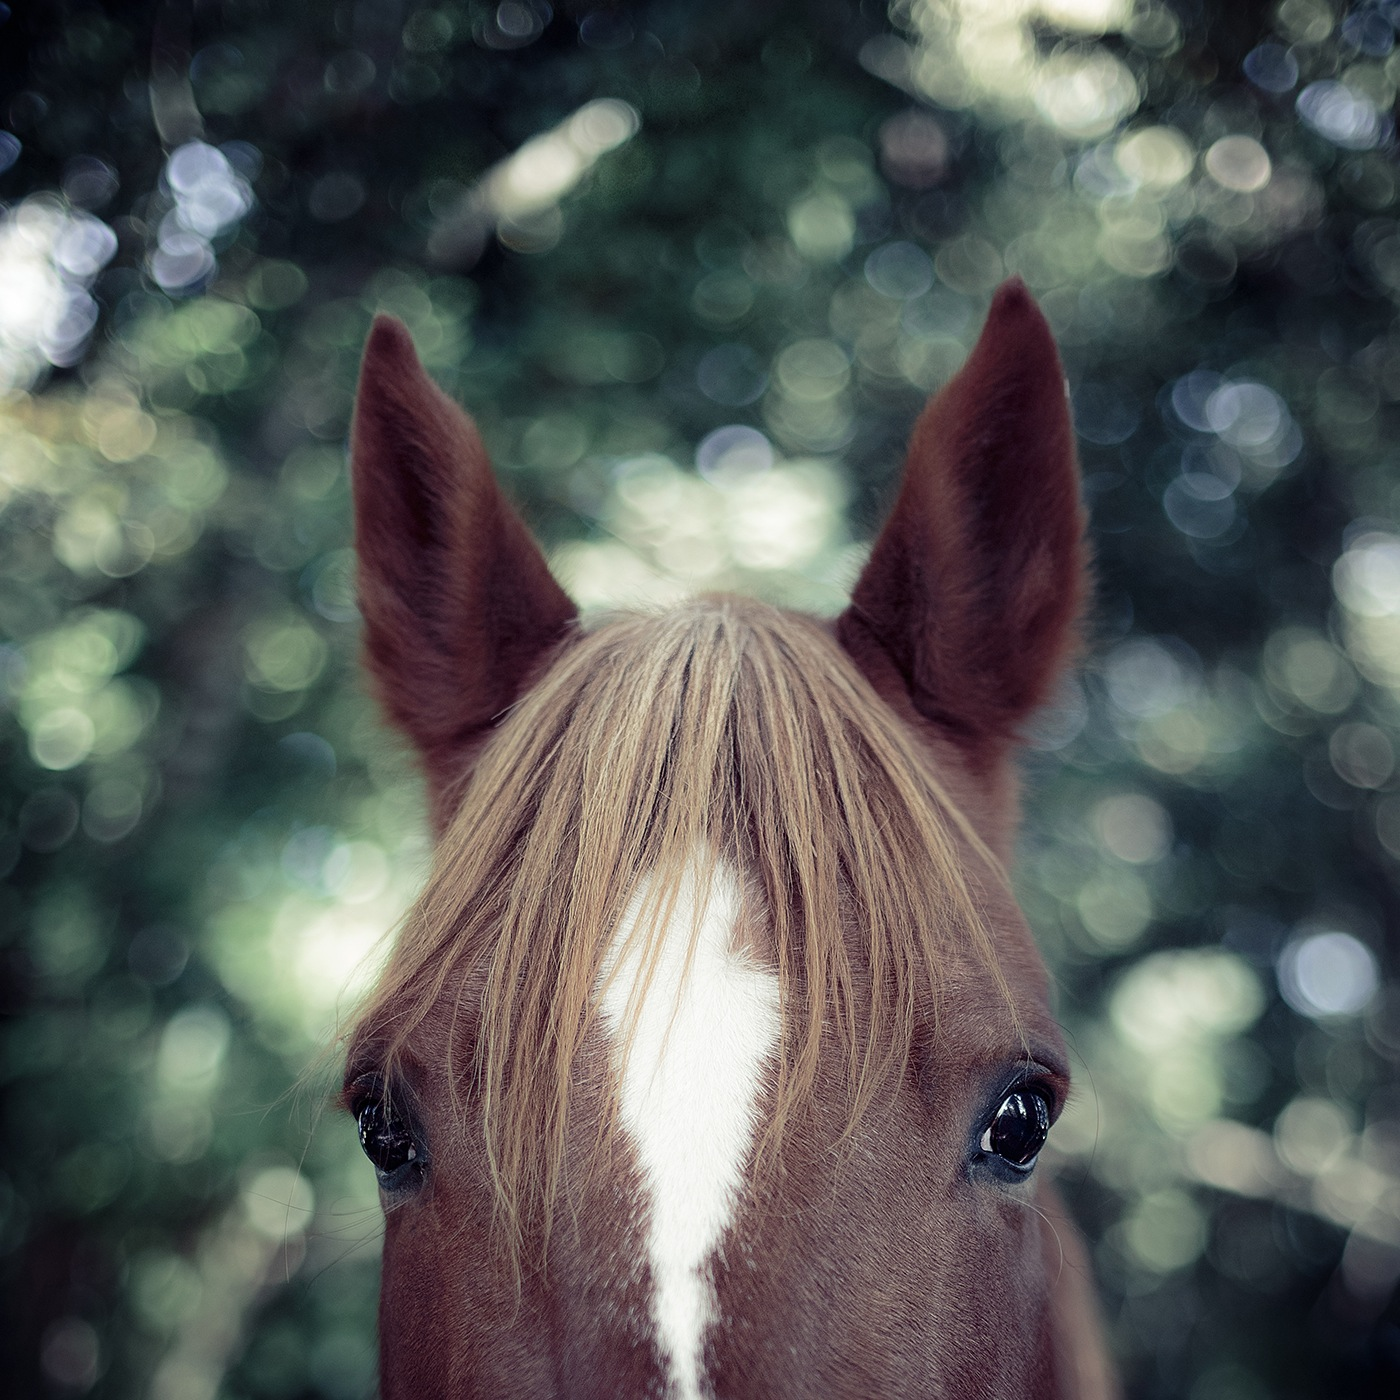 photographe-animaux-domestiques-chevaux-guillaume-heraud-02-small